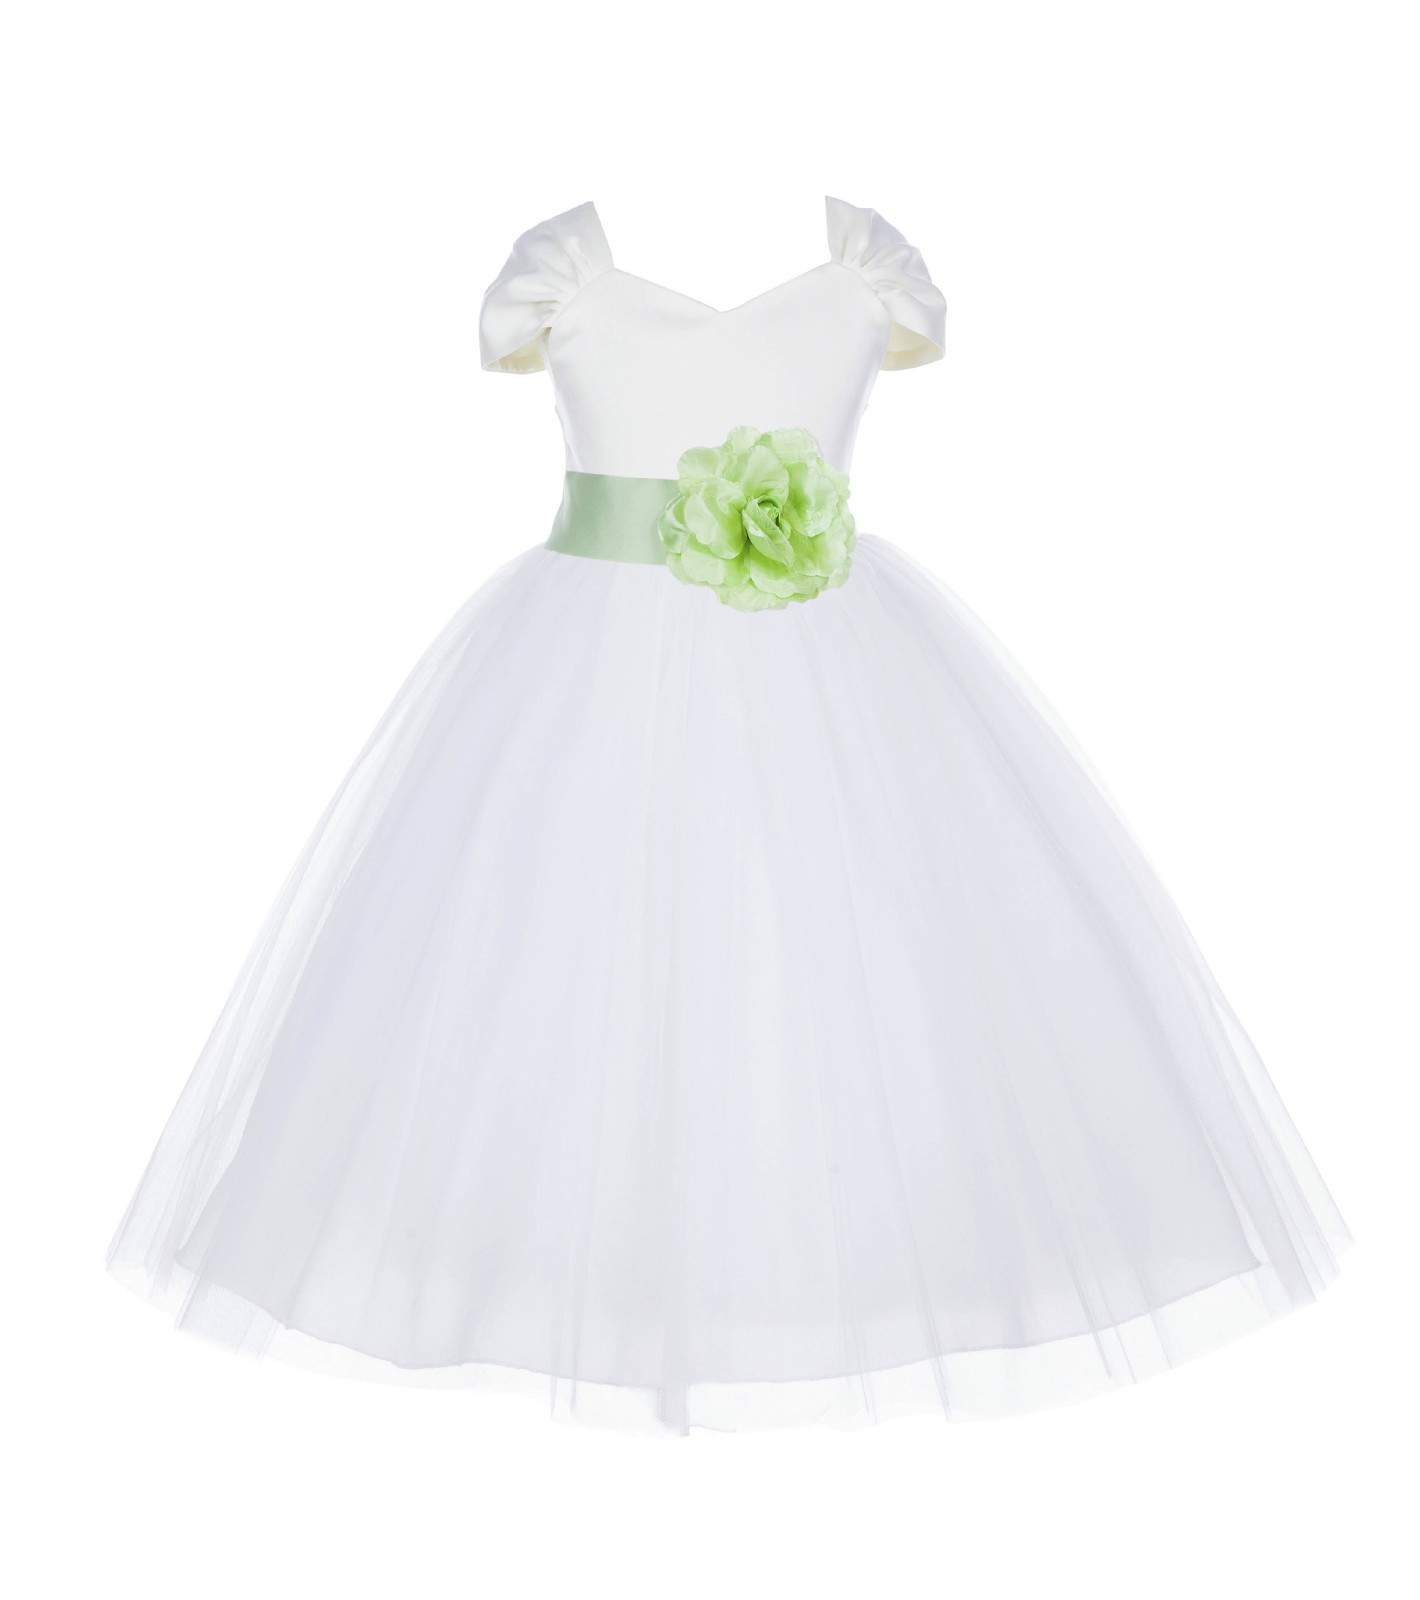 Ivory/Apple Green V-shaped Neckline Short Sleeves Tulle Flower Girl Dress 154S